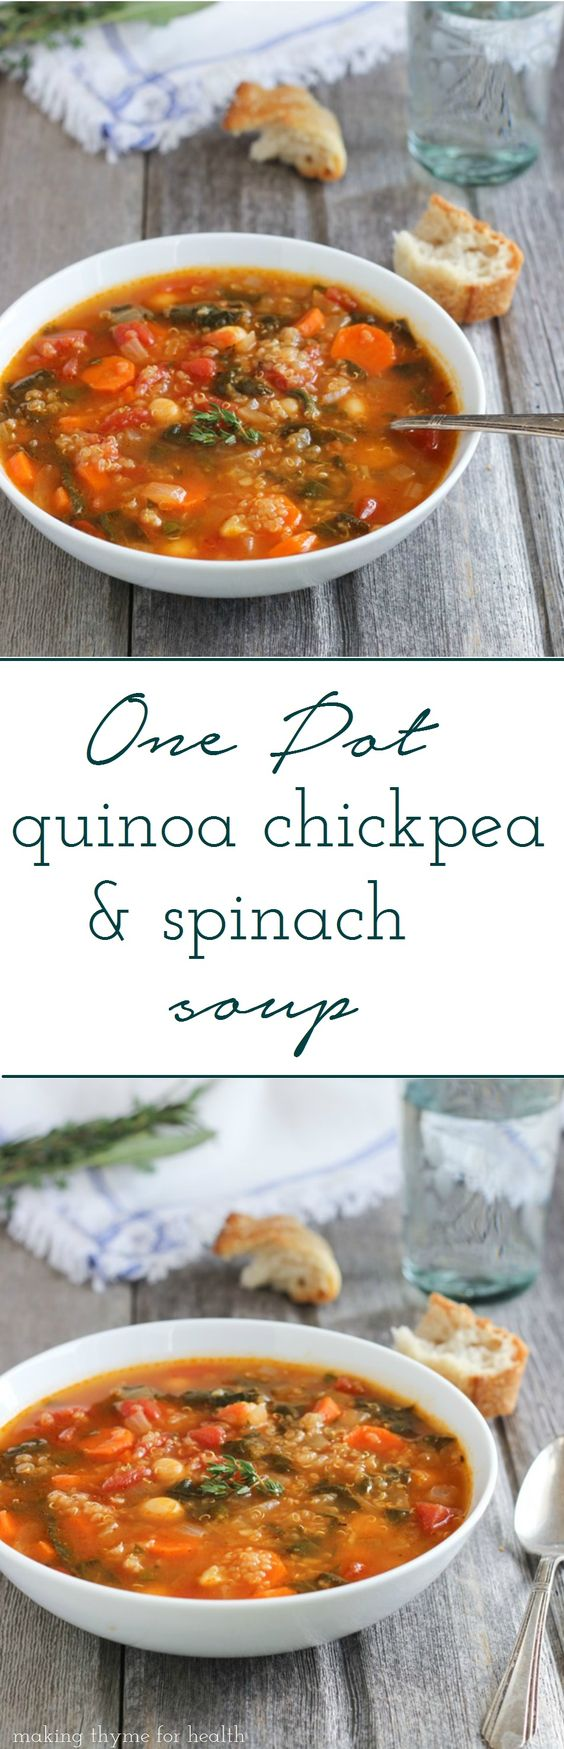 Quinoa Chickpea and Spinach Soup | One Pot Meals, Chickpeas and One ...